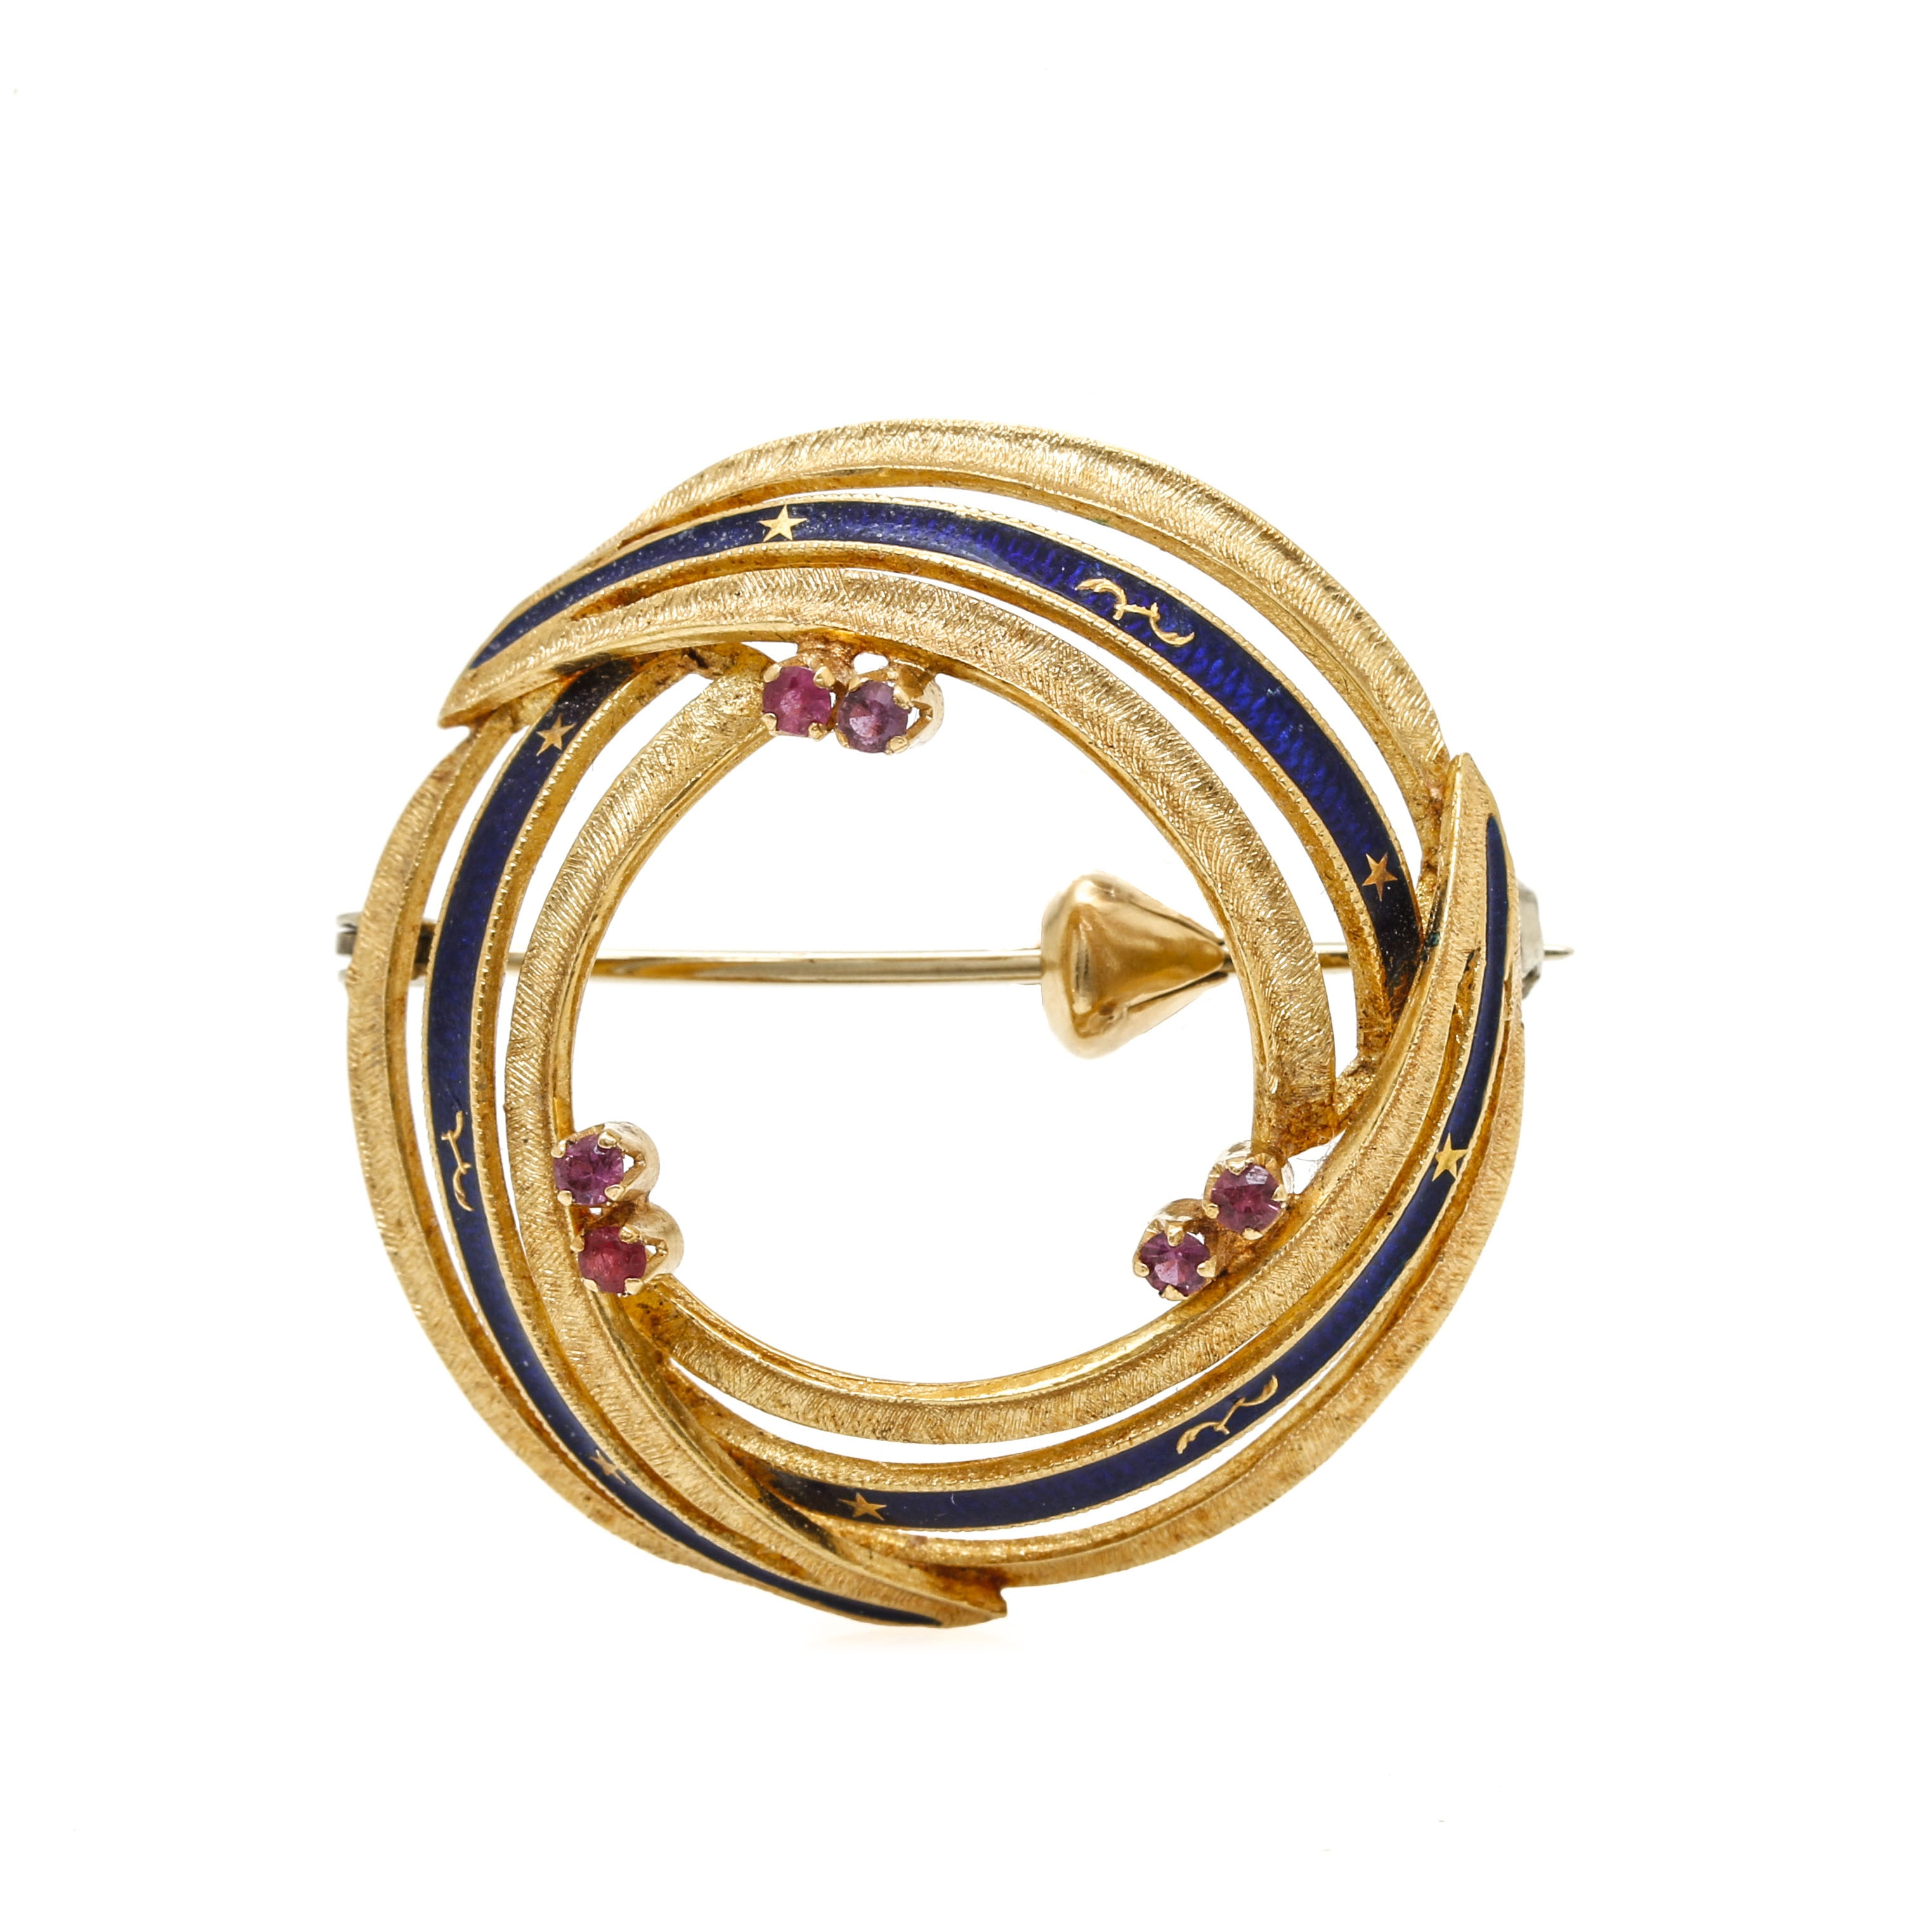 Vintage 14K Yellow Gold Ruby and Enamel Brooch